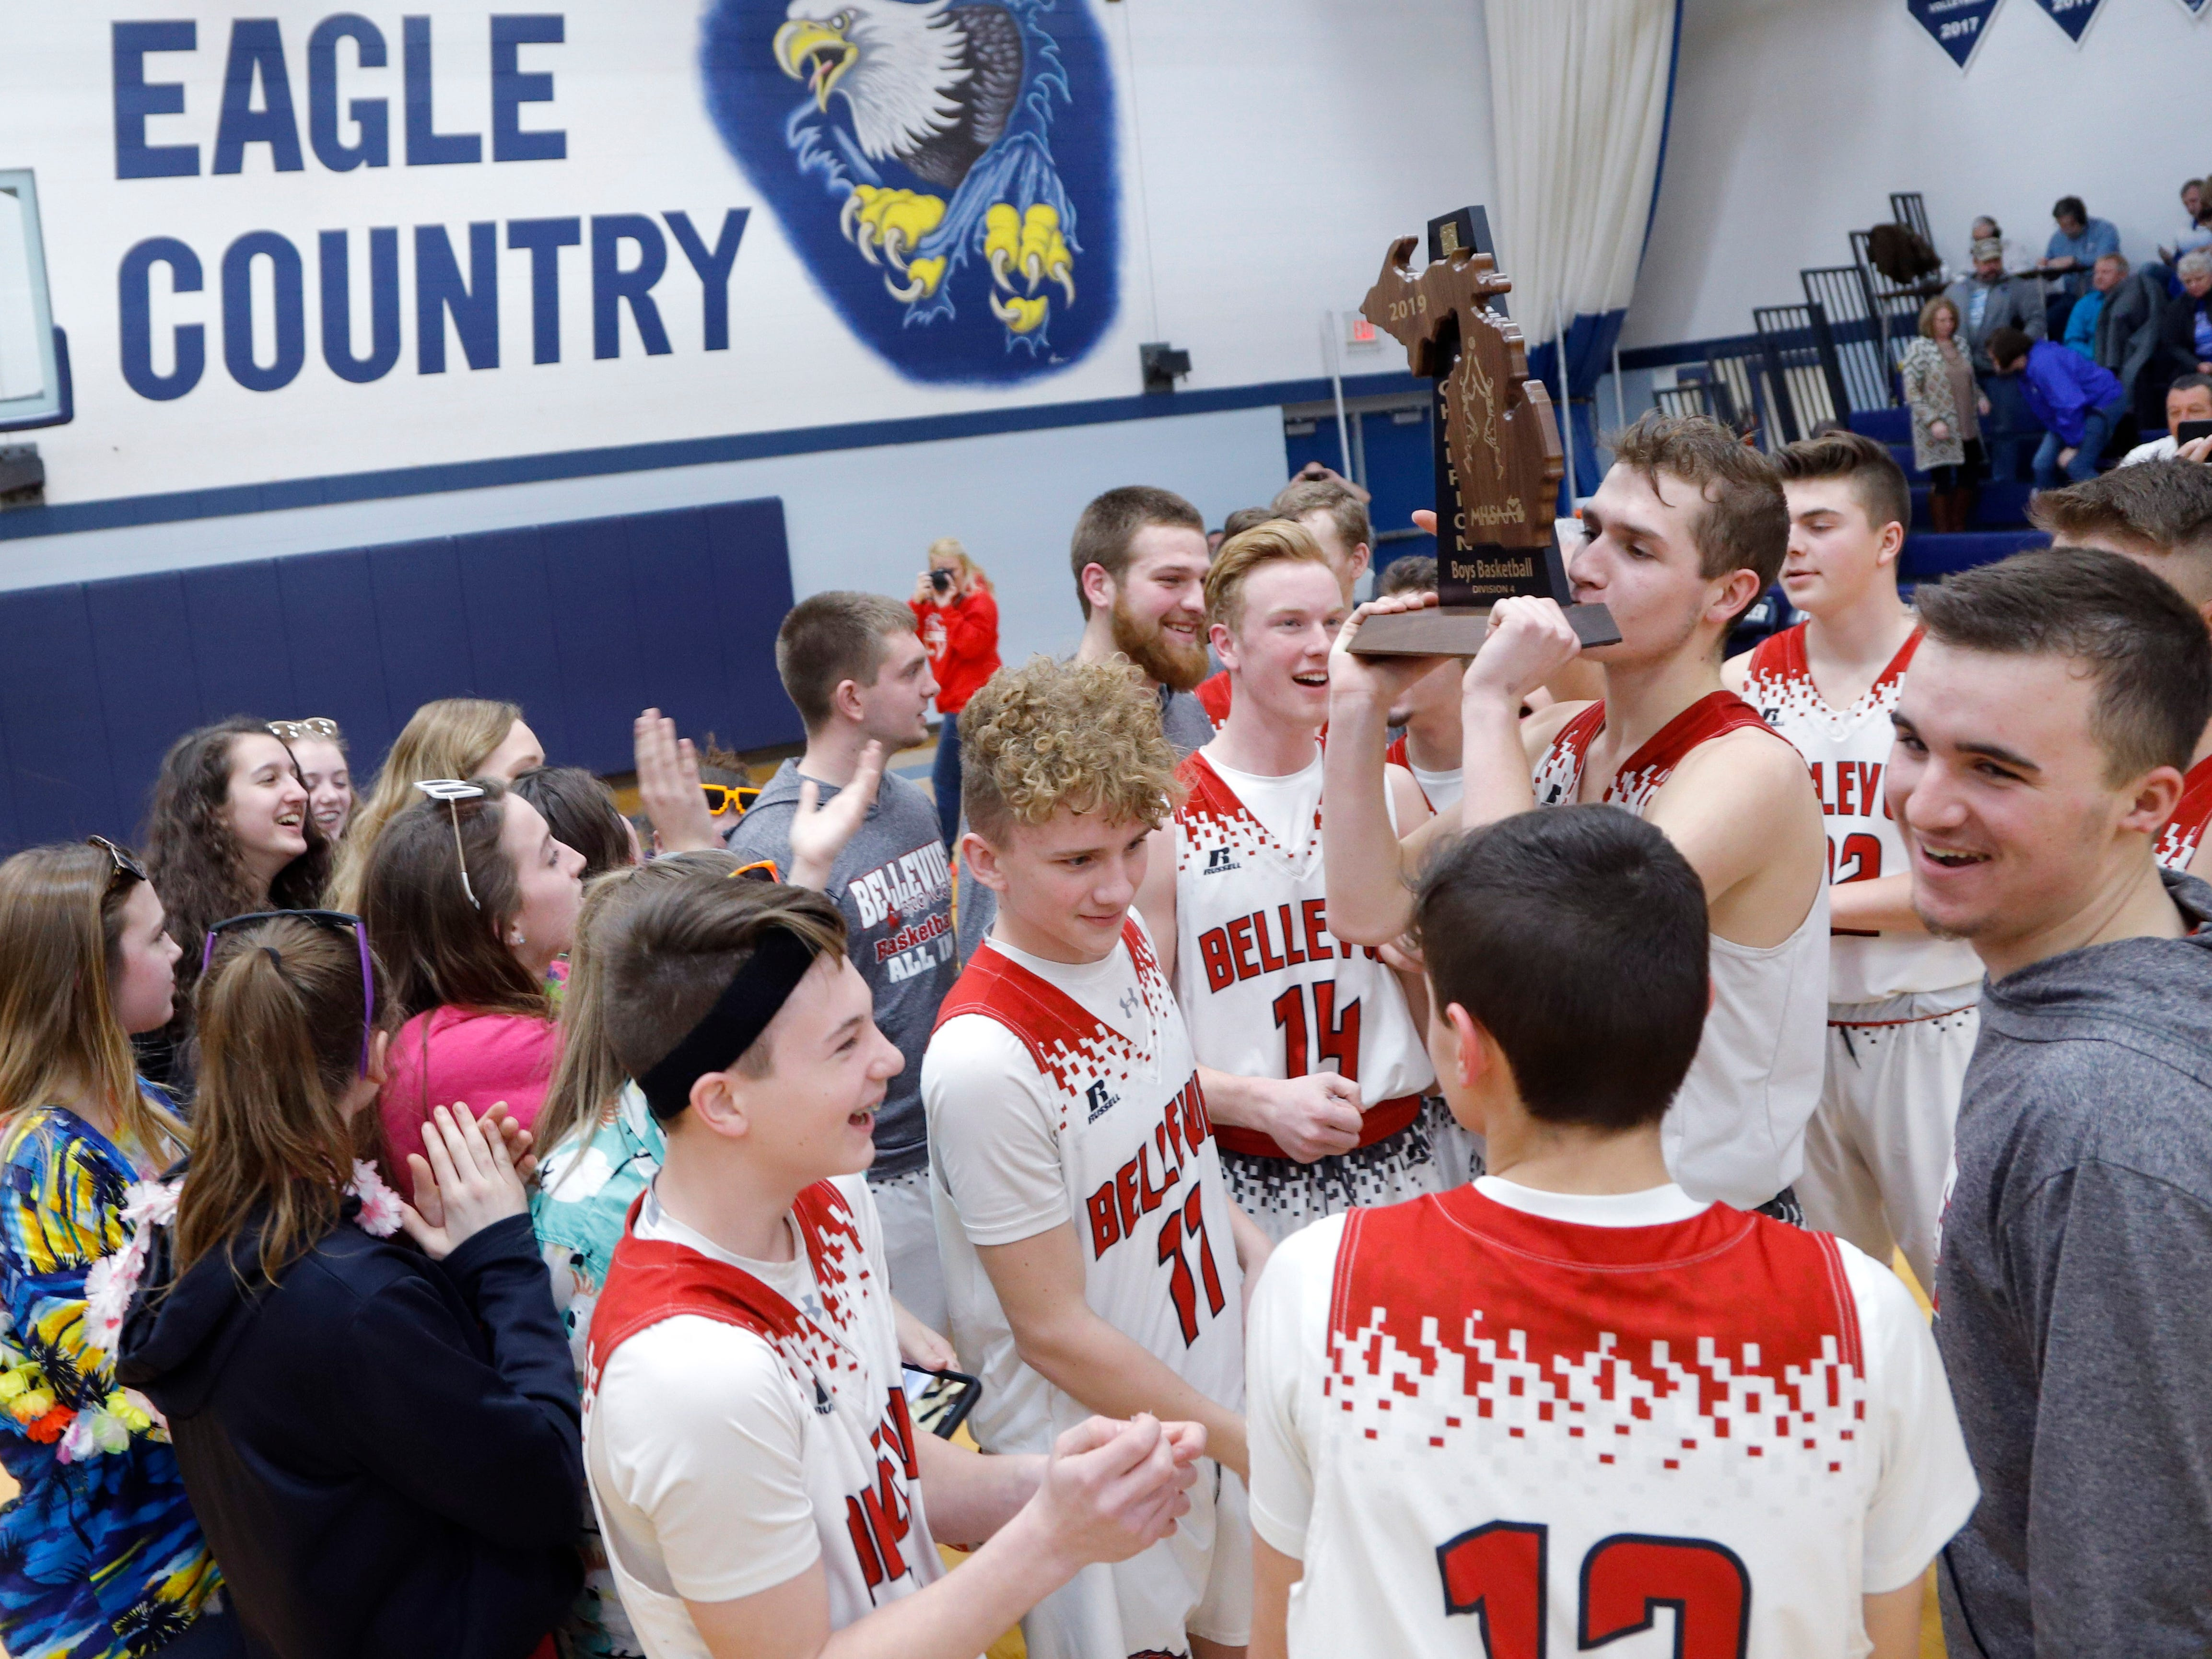 Bellevue players and fans celebrate with their regional championship trophy after defeating Pittsford 42-28, Thursday, March 7, 2019, in Fowler, Mich.